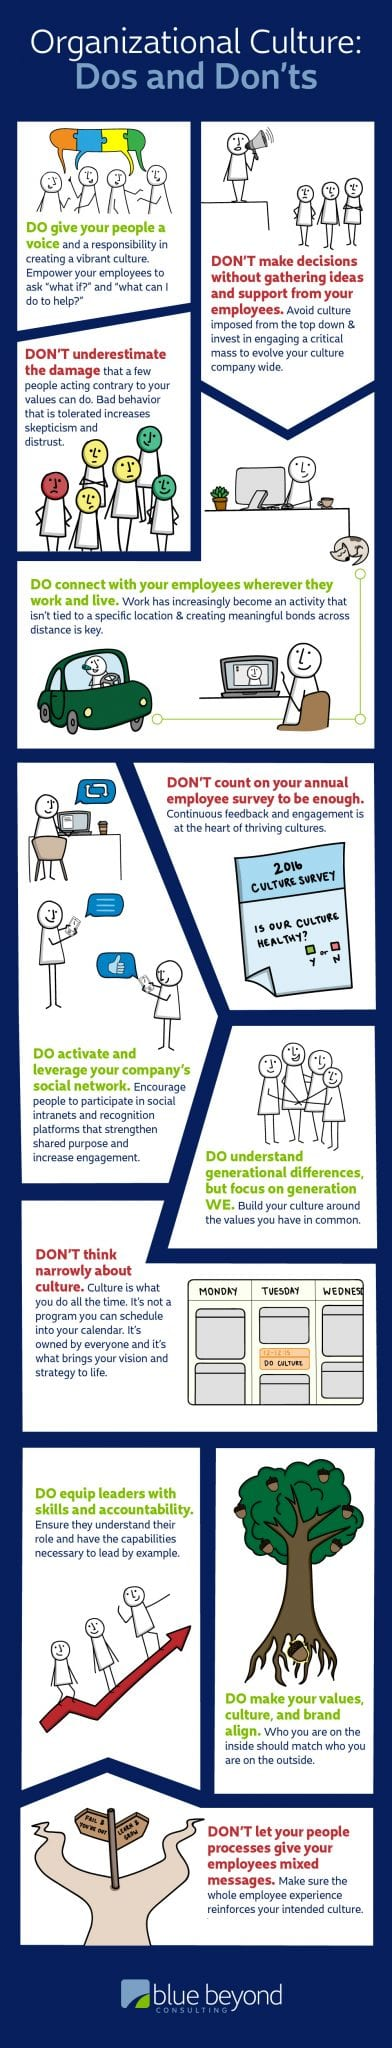 Organizational culture dos and don'ts infographic